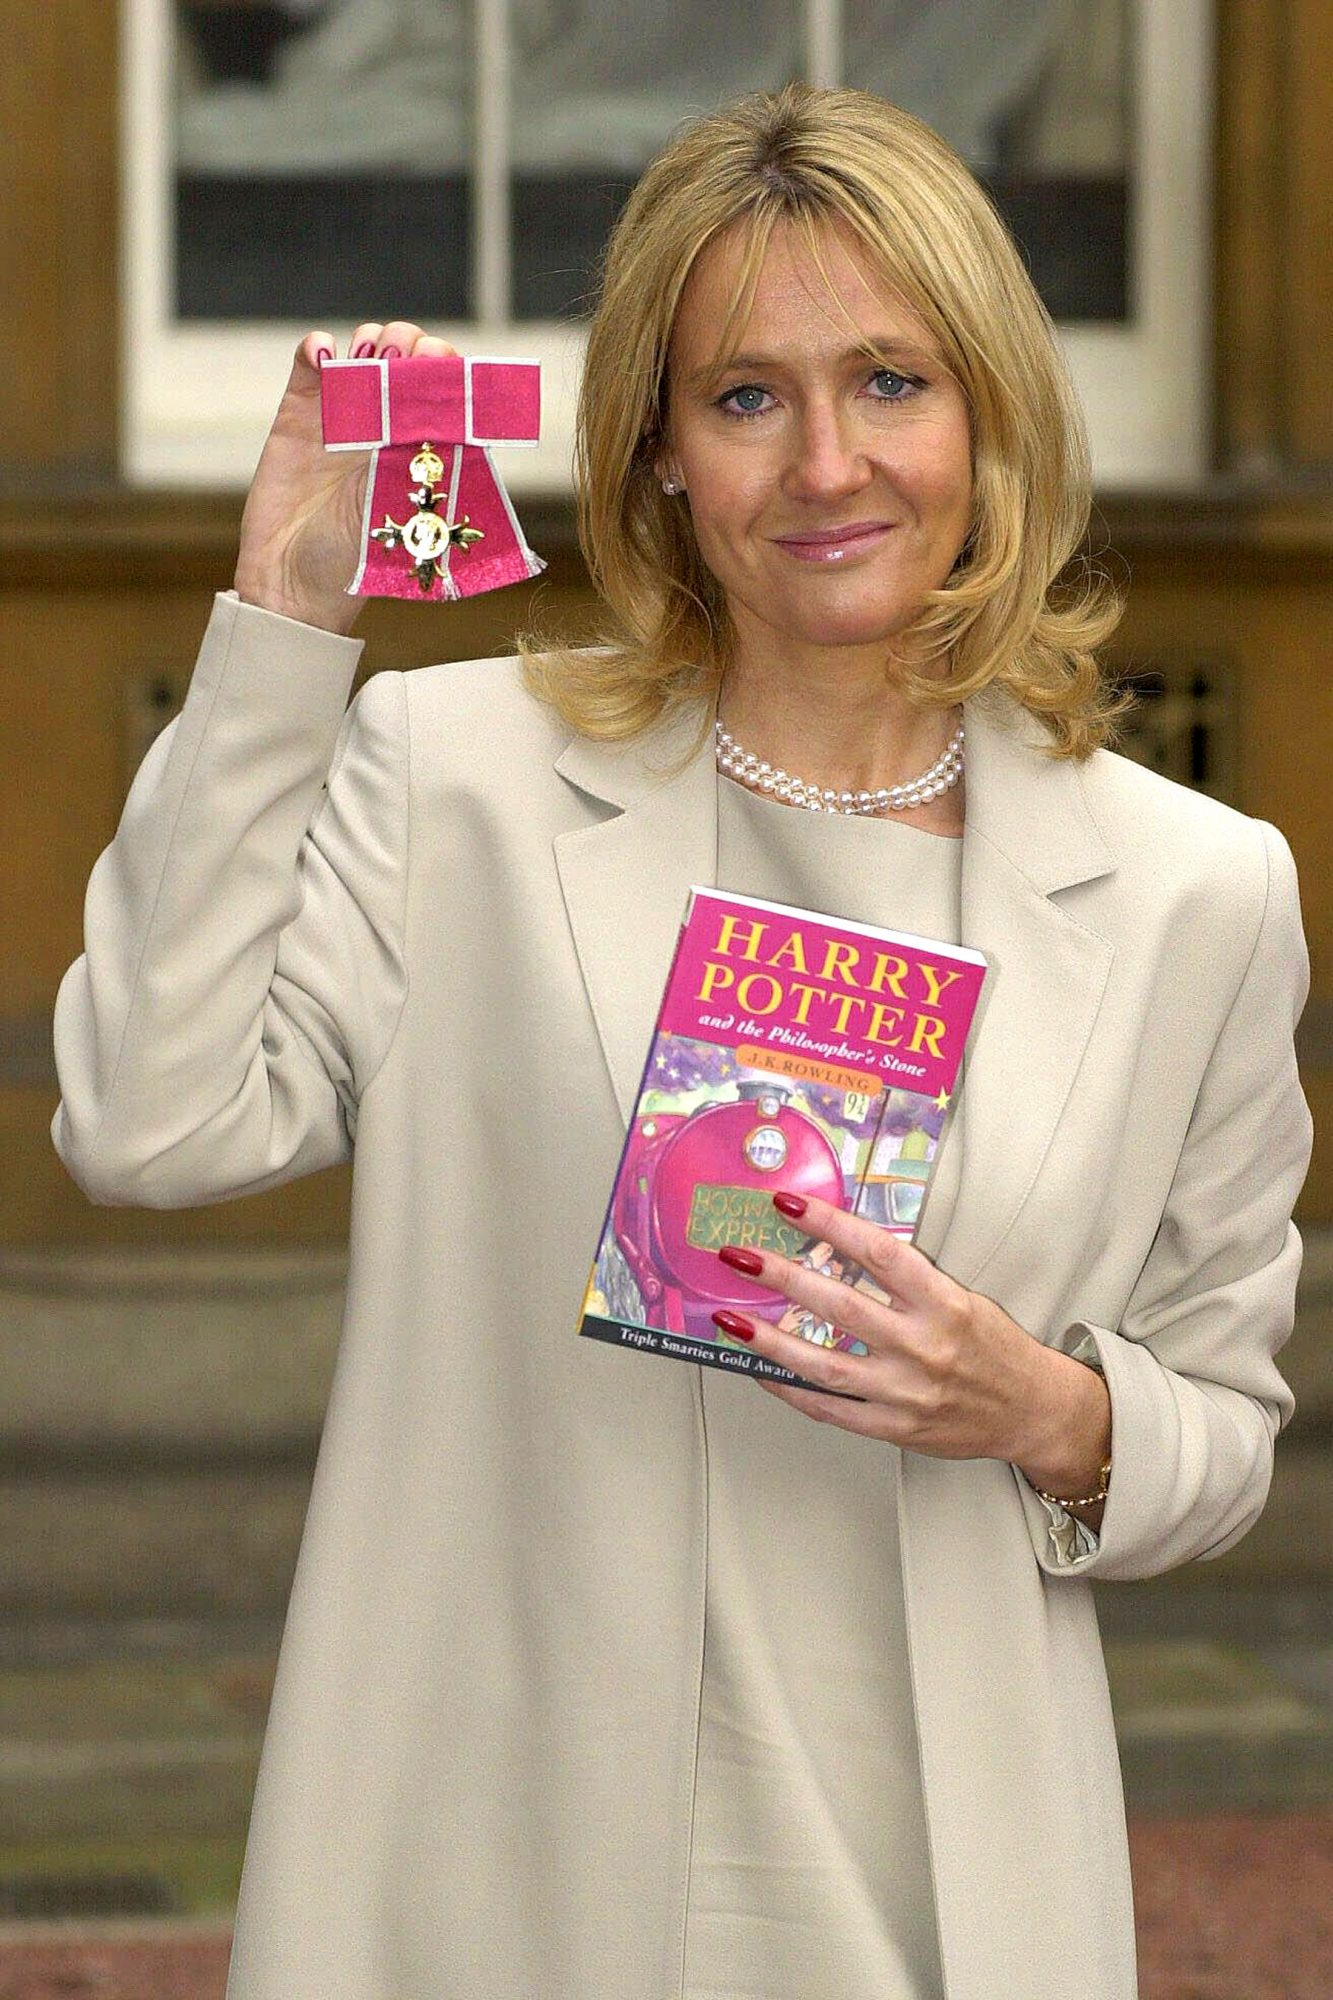 BRITAIN PEOPLE ROWLING POTTER